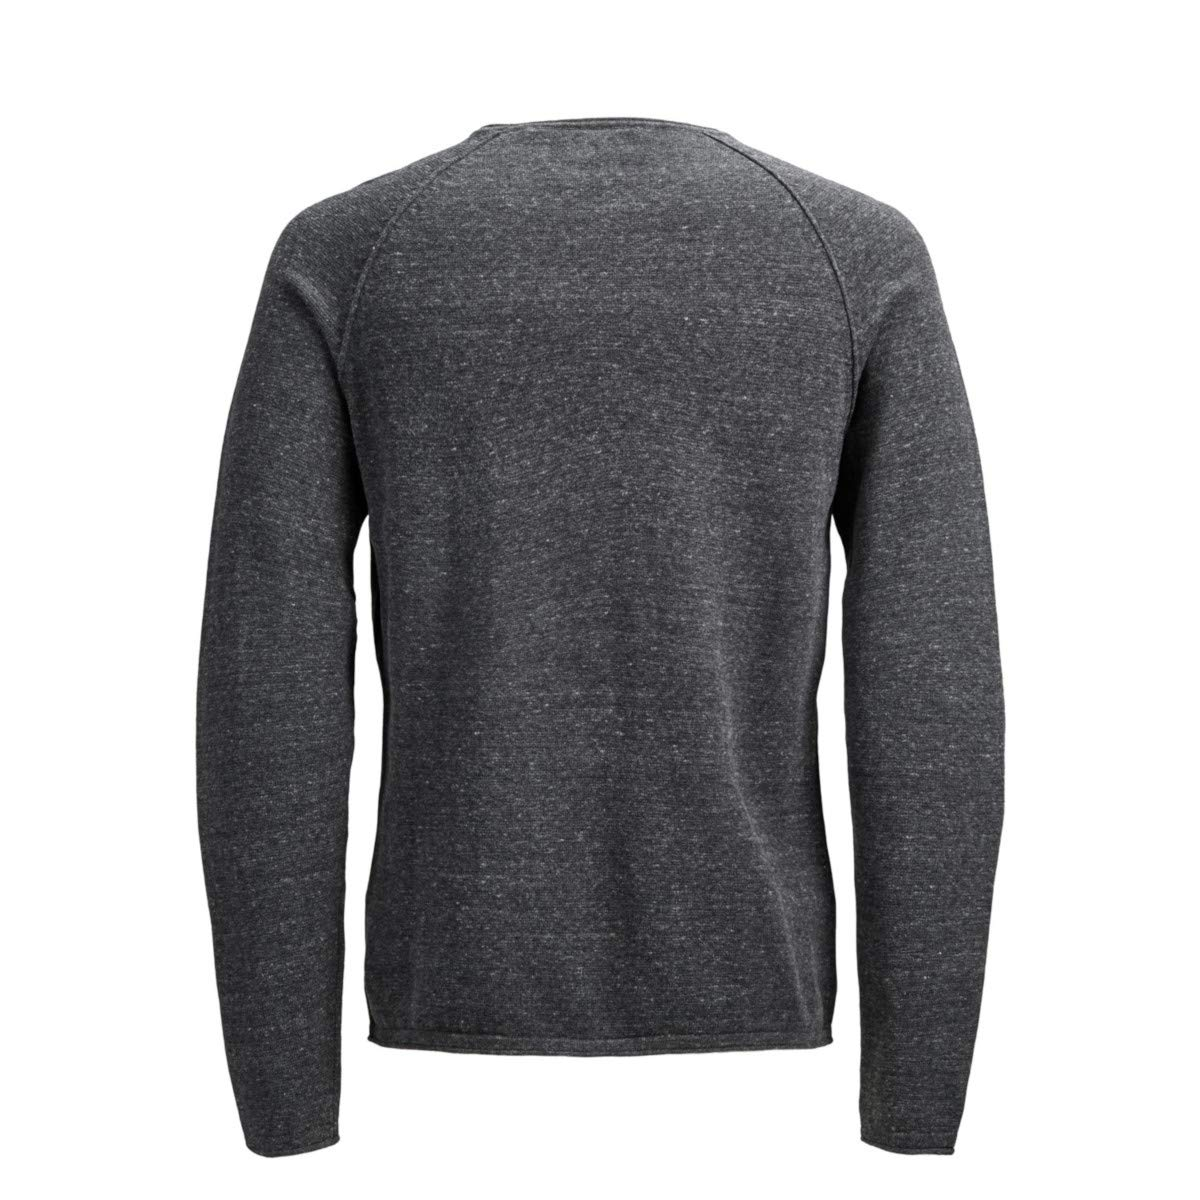 JACK & JONES - Jersey Hombre Color: Dark Grey Melange Talla: L